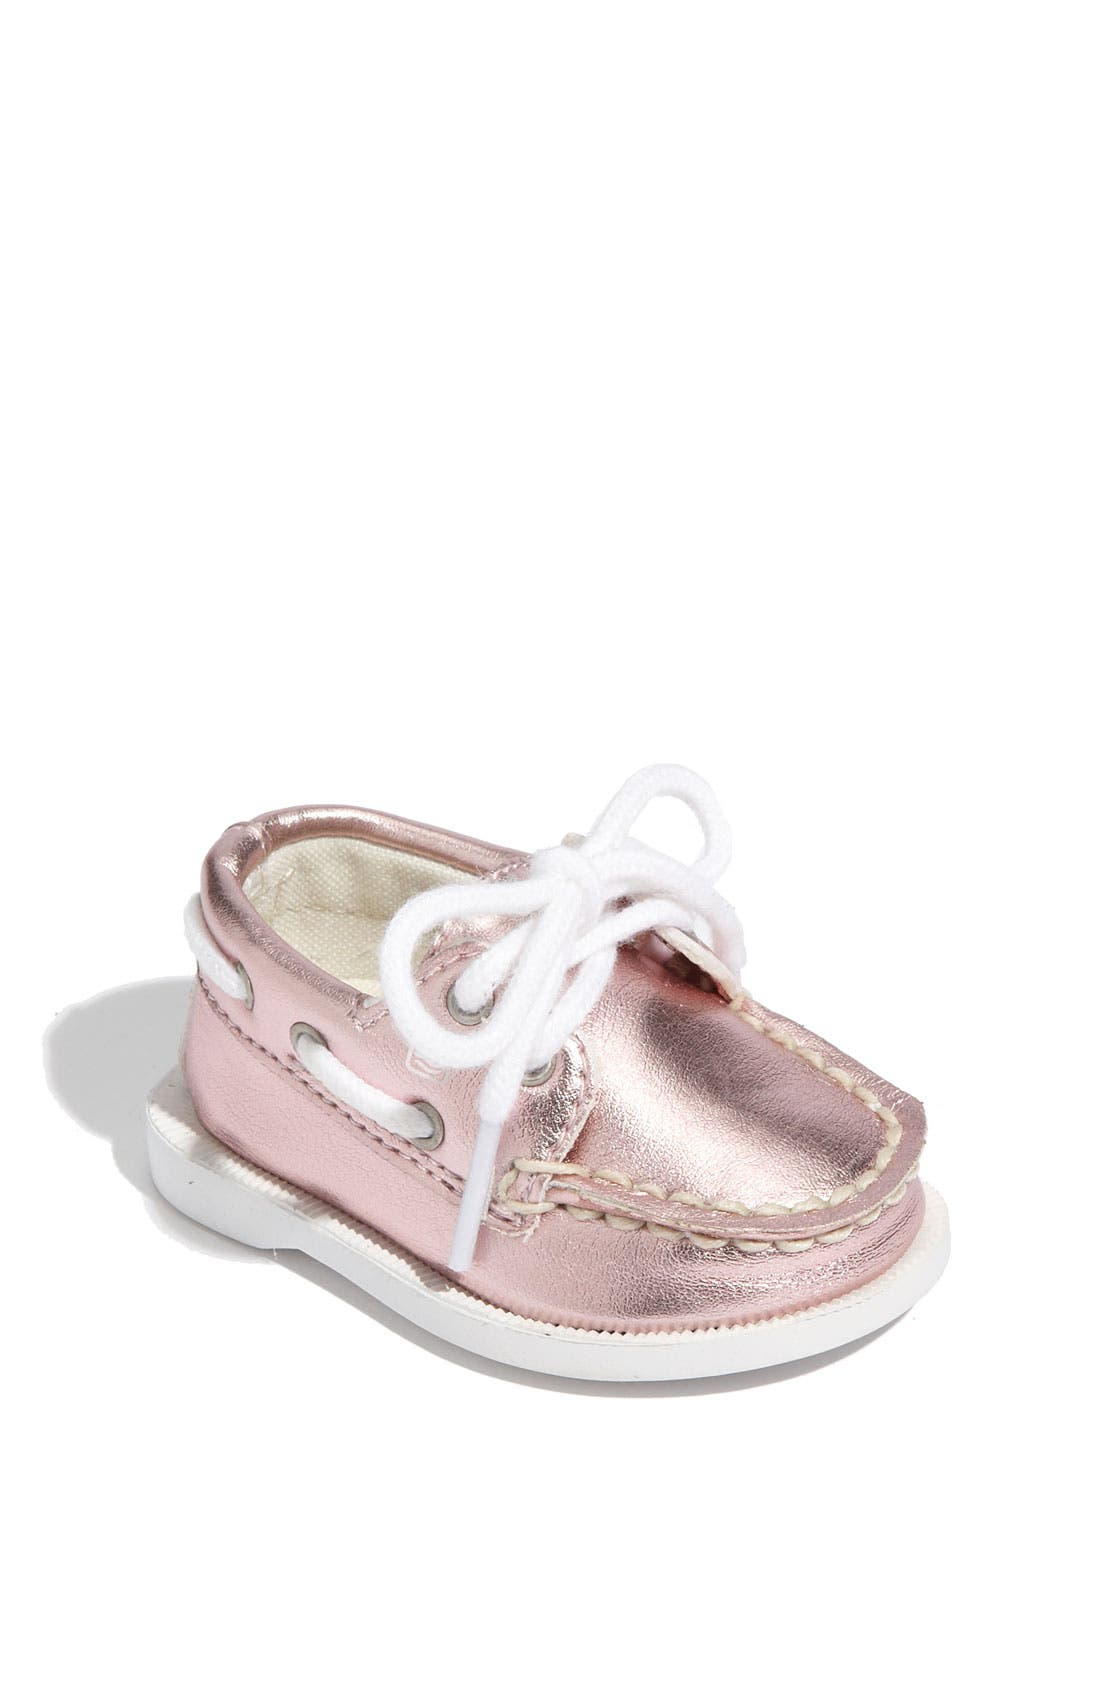 Alternate Image 1 Selected - Sperry Top-Sider® 'Authentic Original' Crib Shoe (Baby)